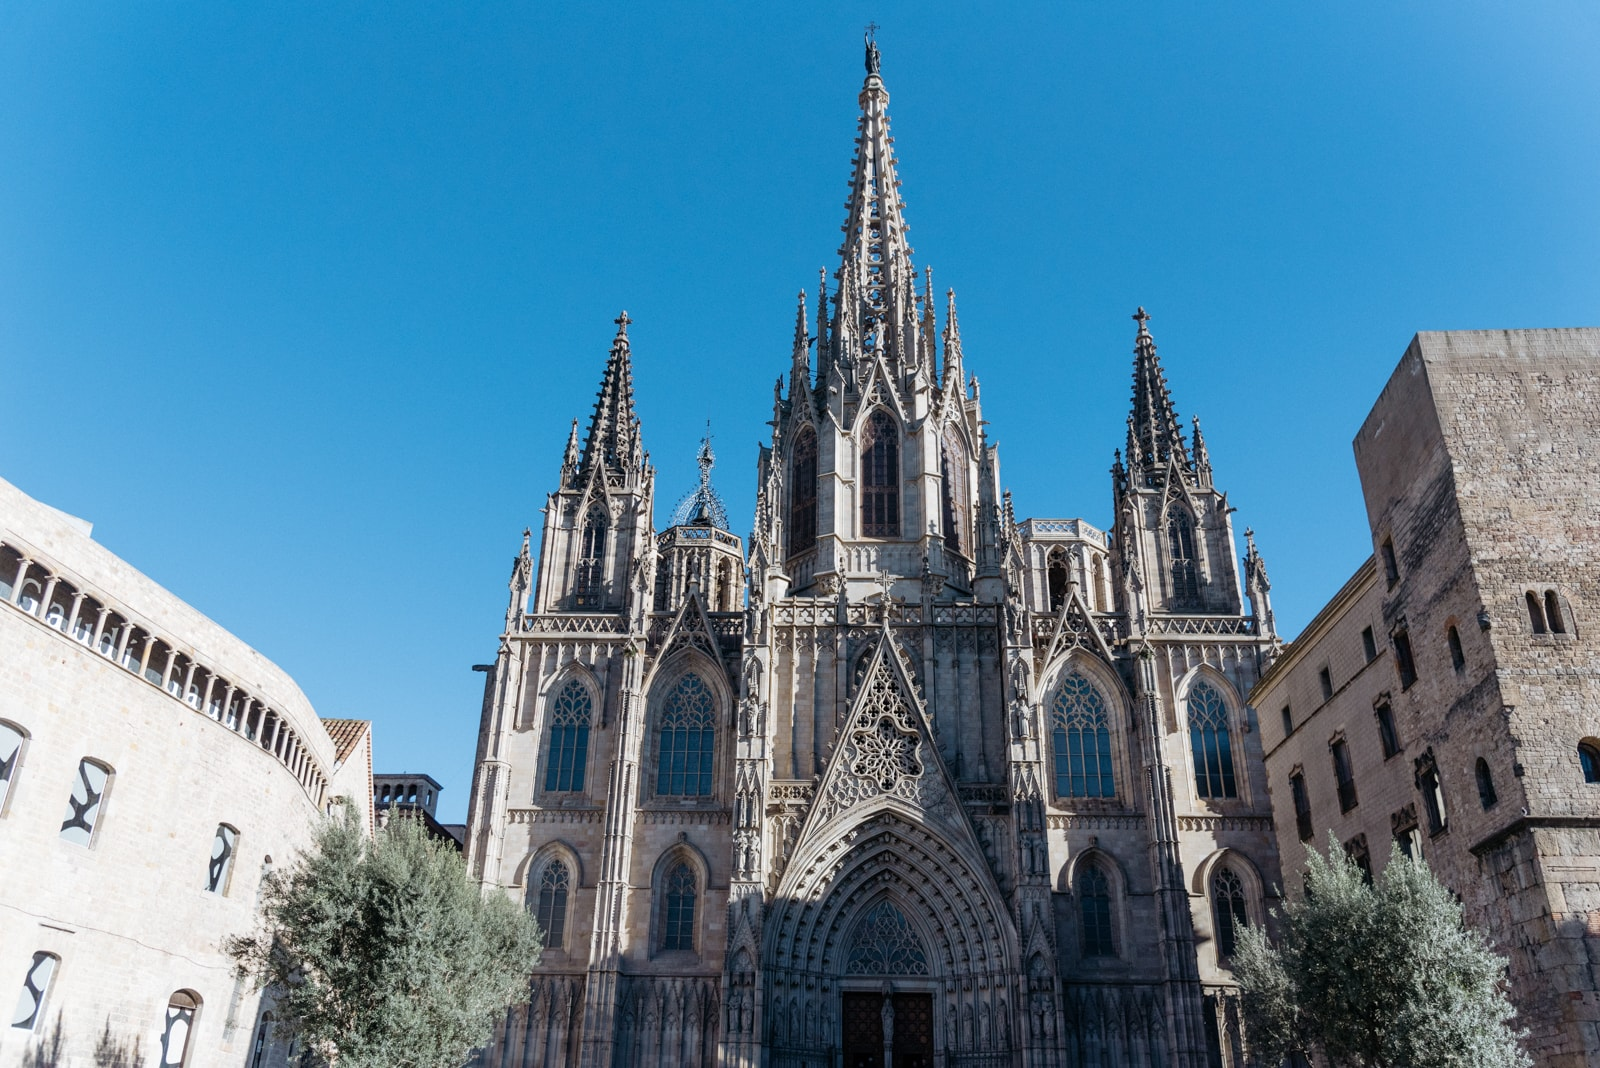 Gotico Pinterest The Top 10 Things To Do And See In Barrio Gótico Barcelona